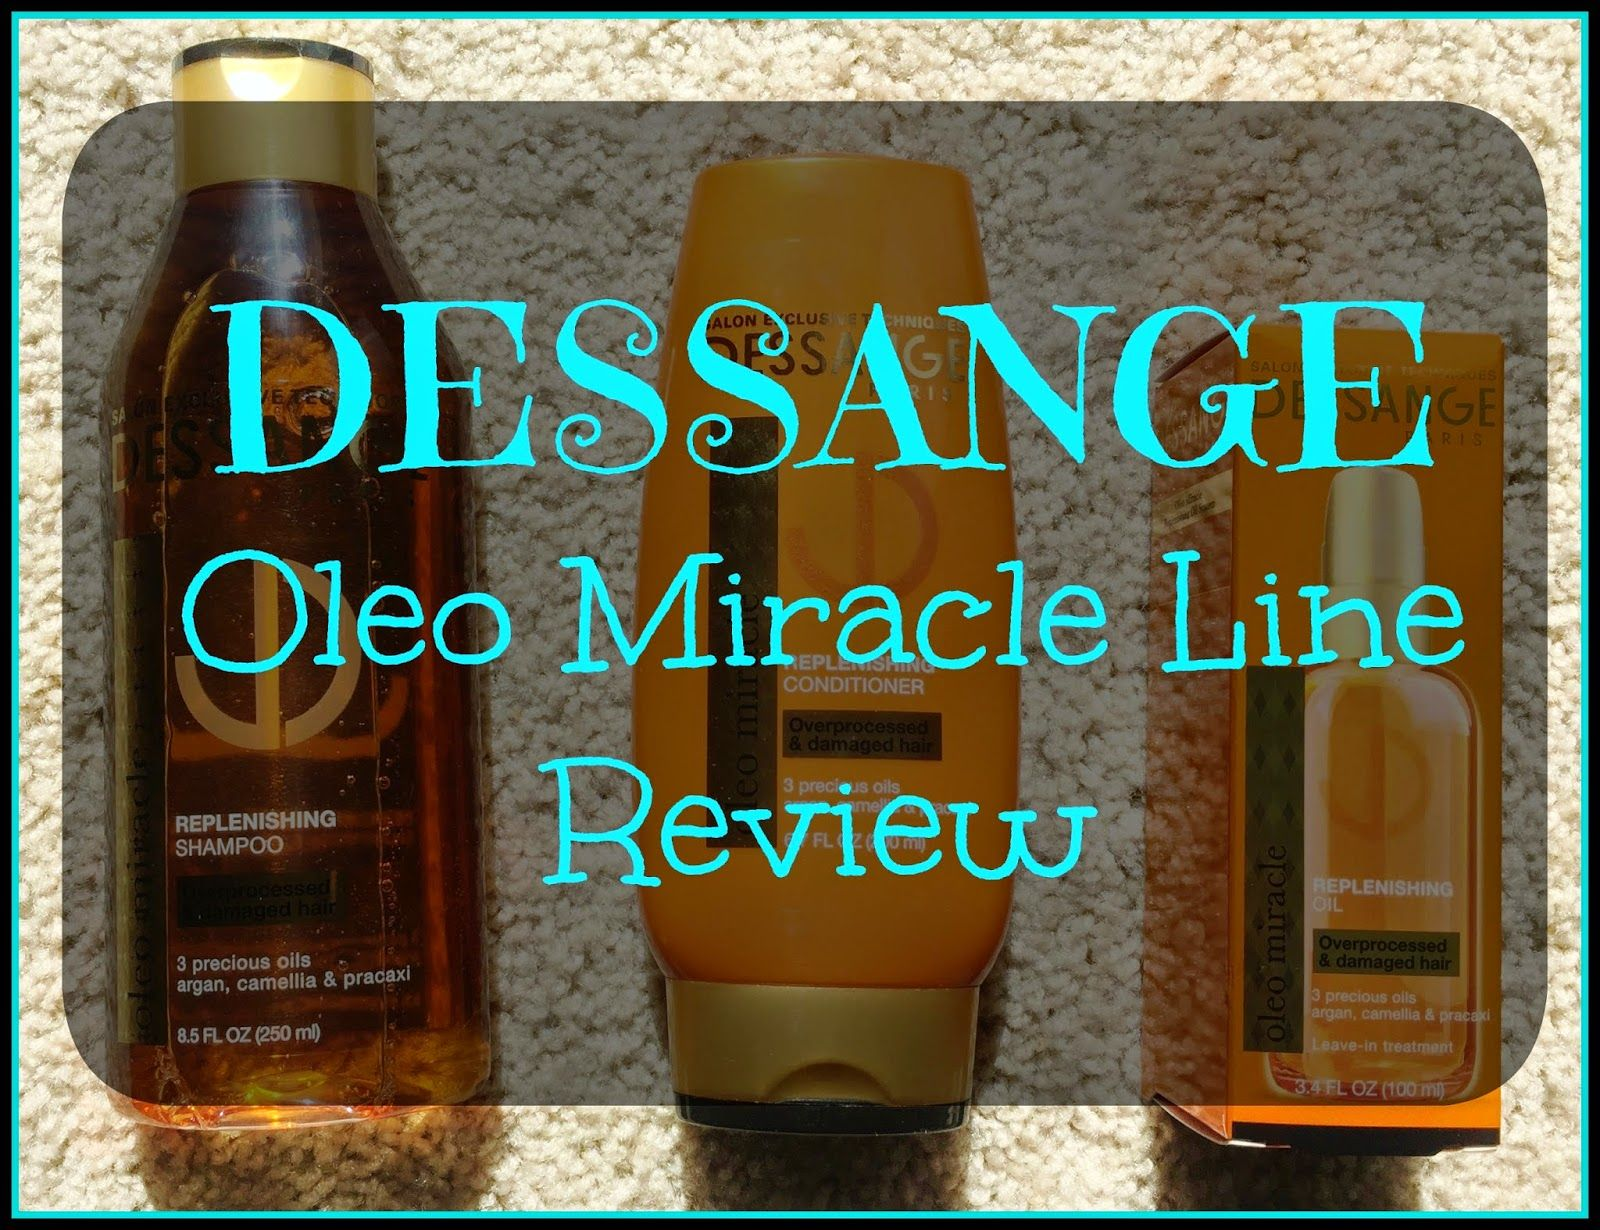 Kimberly's Chronicle: REVIEW | Dessange Oleo Miracle Hair Line for Damaged Hair